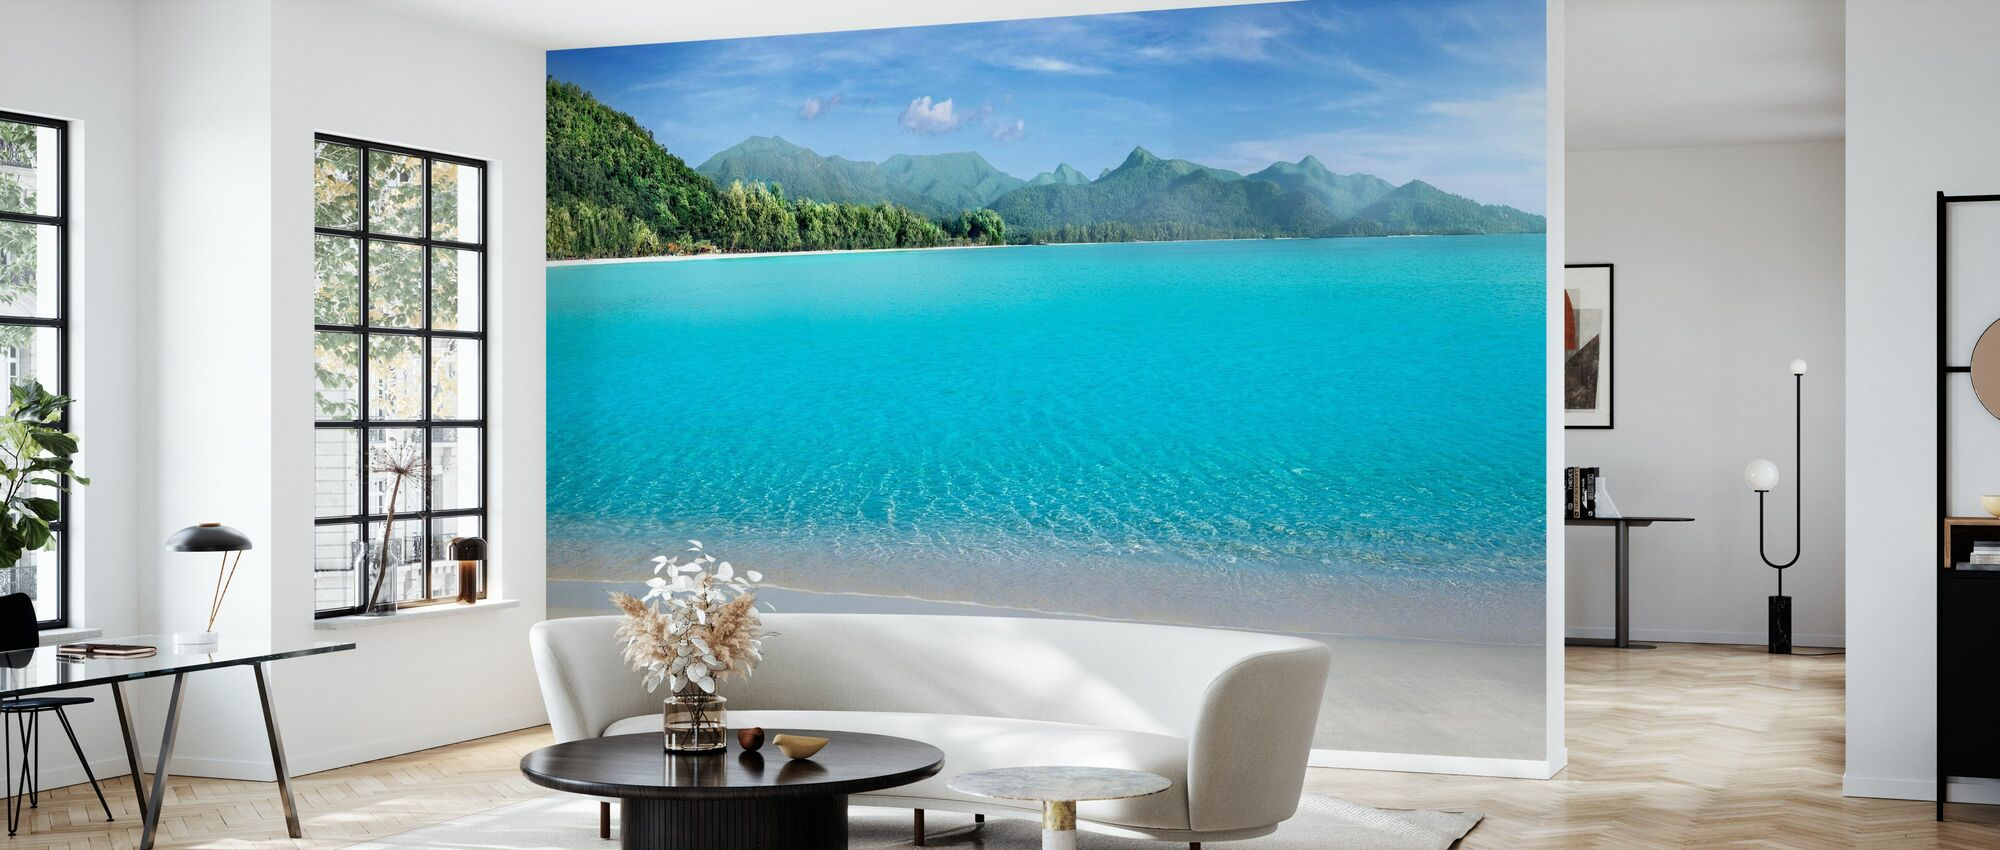 Perfect Day - Wallpaper - Living Room